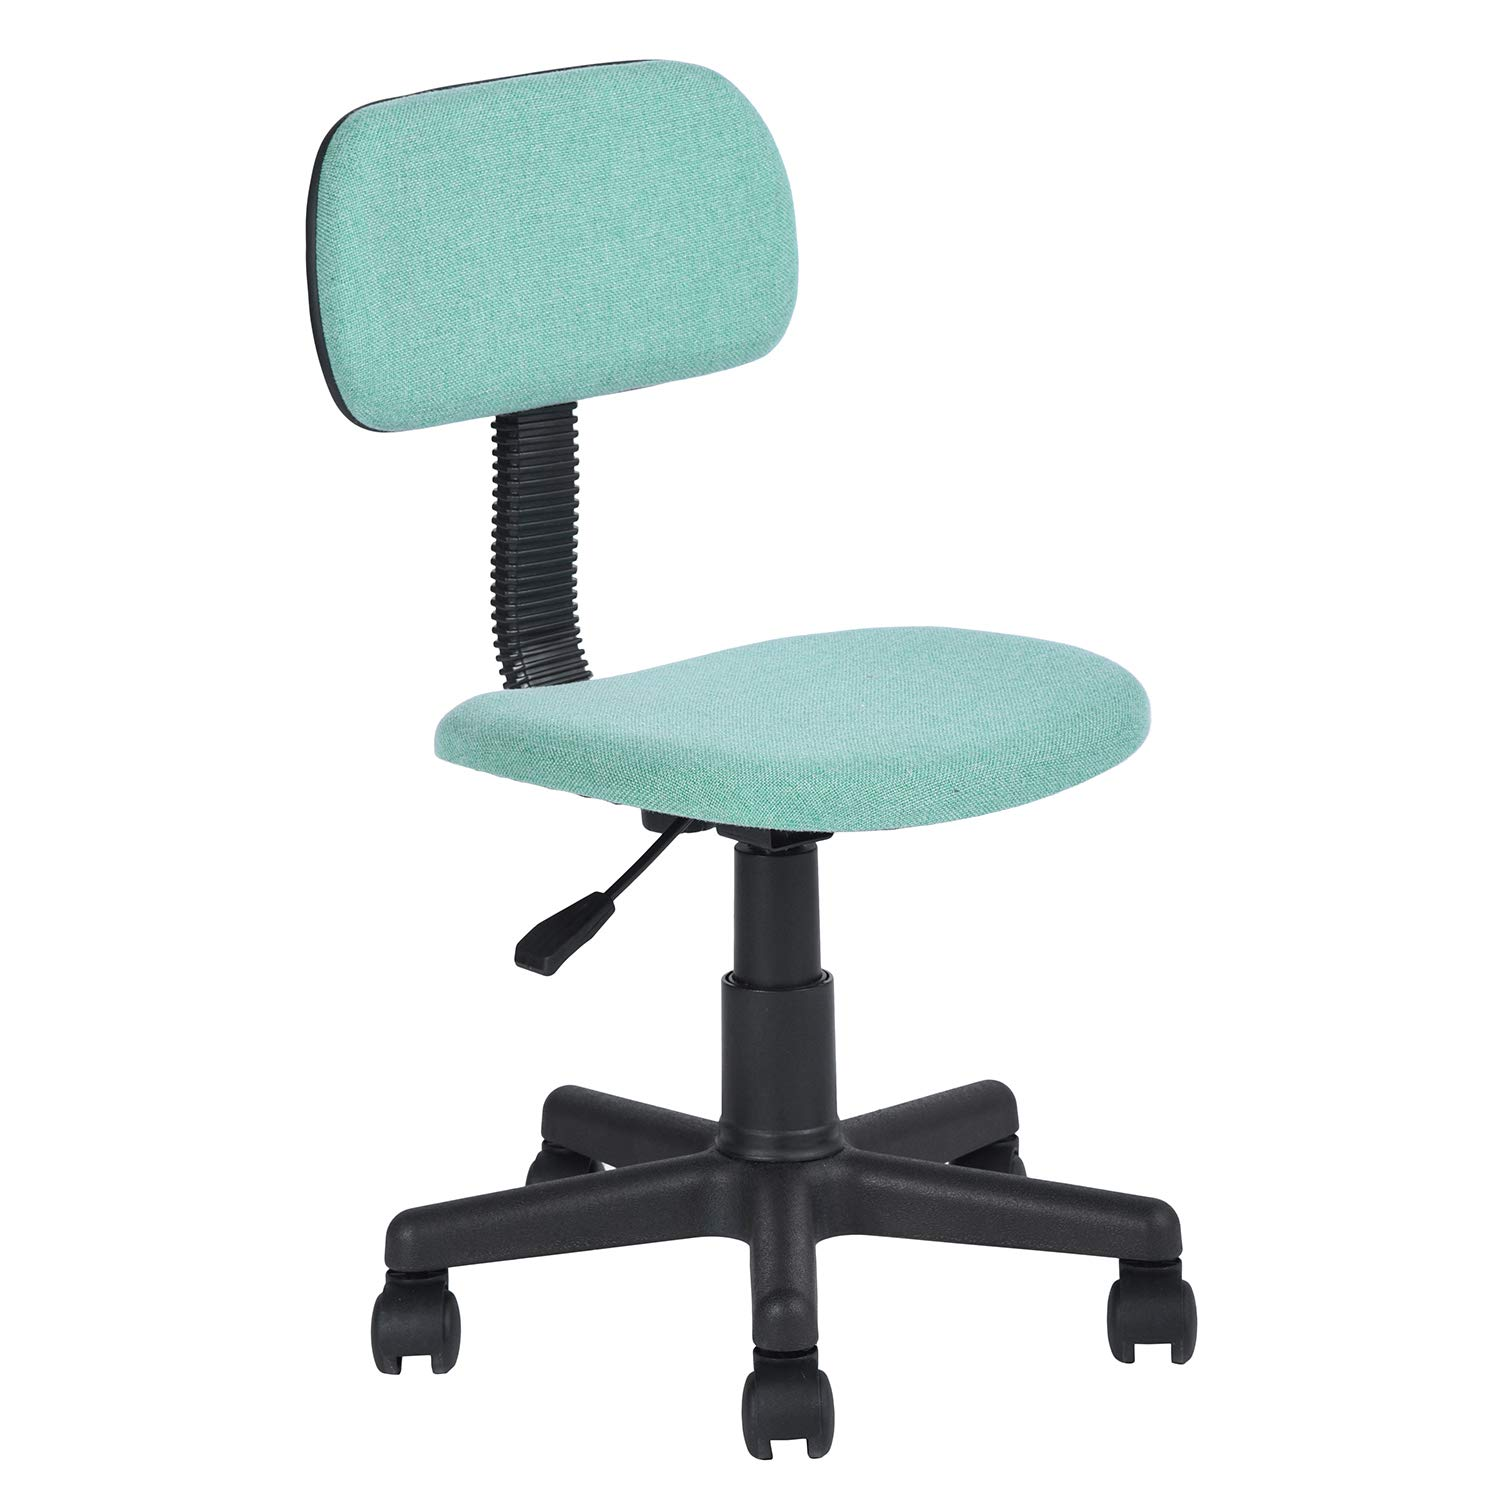 HOMY CASA Yanyan Mesh Mid-Back Executive Adjustable Computer Task Desk Office Chairs (Green)